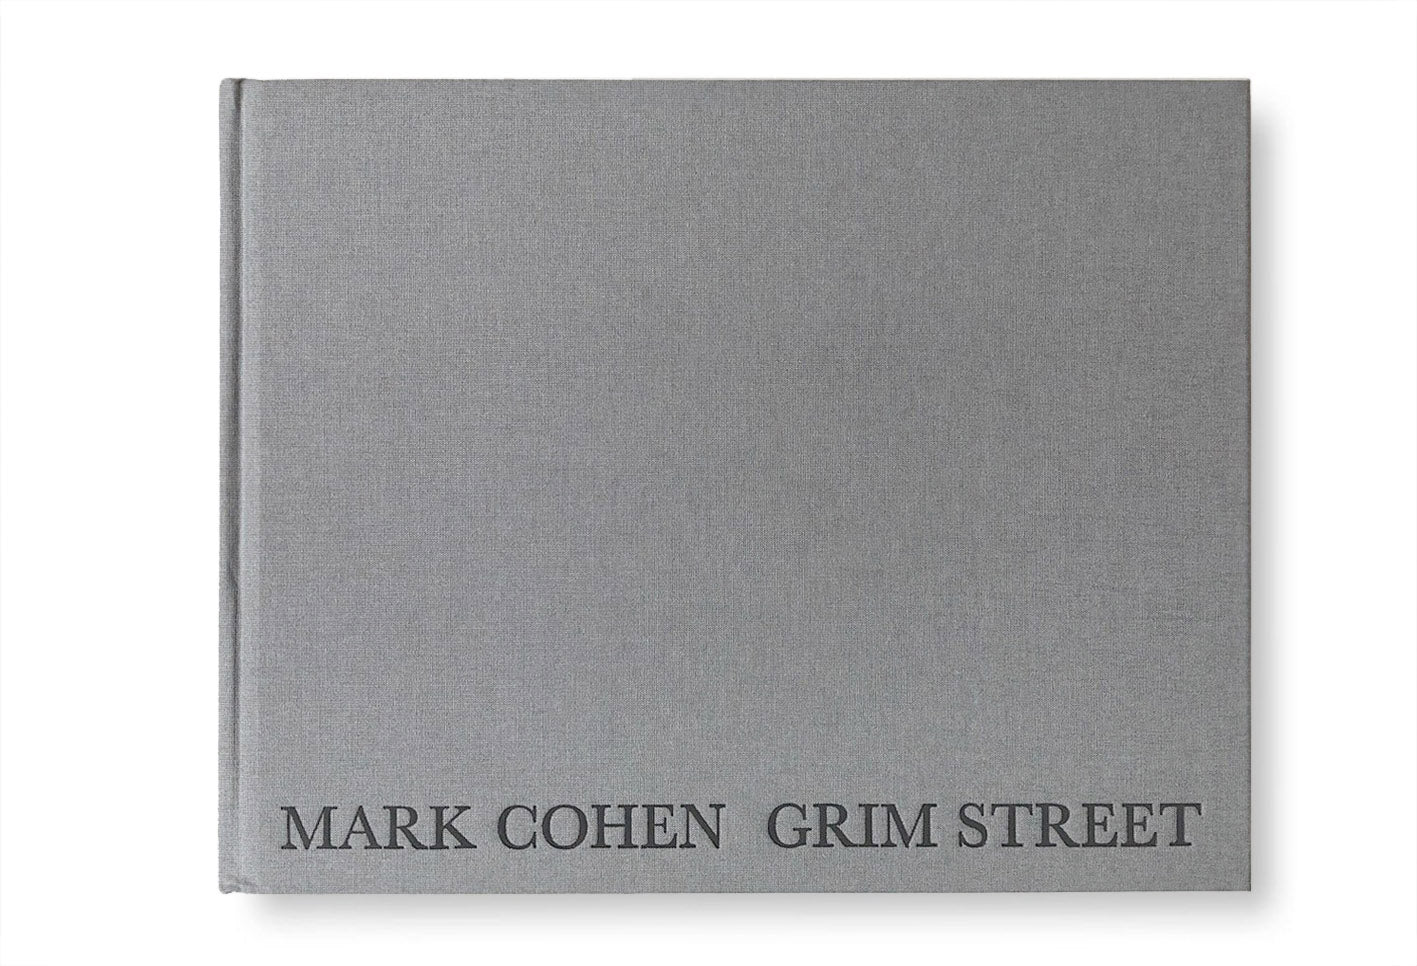 GRIM STREET Special edition signed